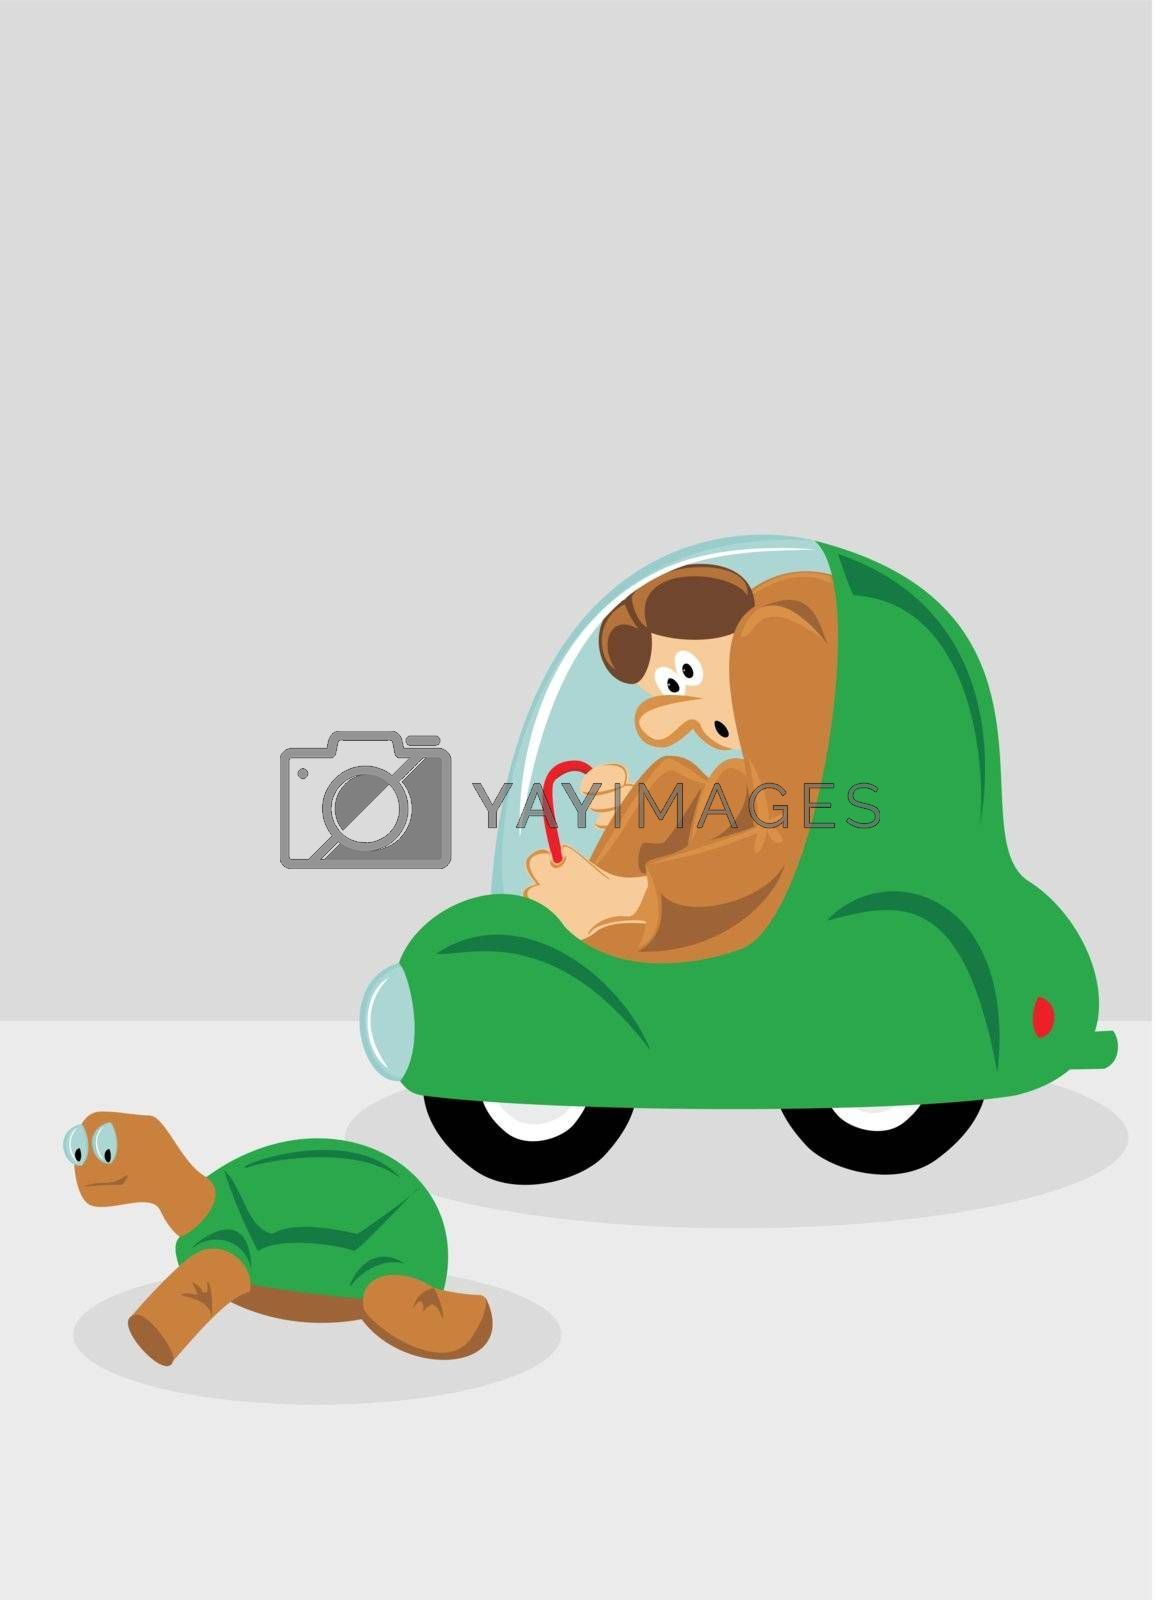 Tall man stuck in a small car is passed by a turtle faster than him